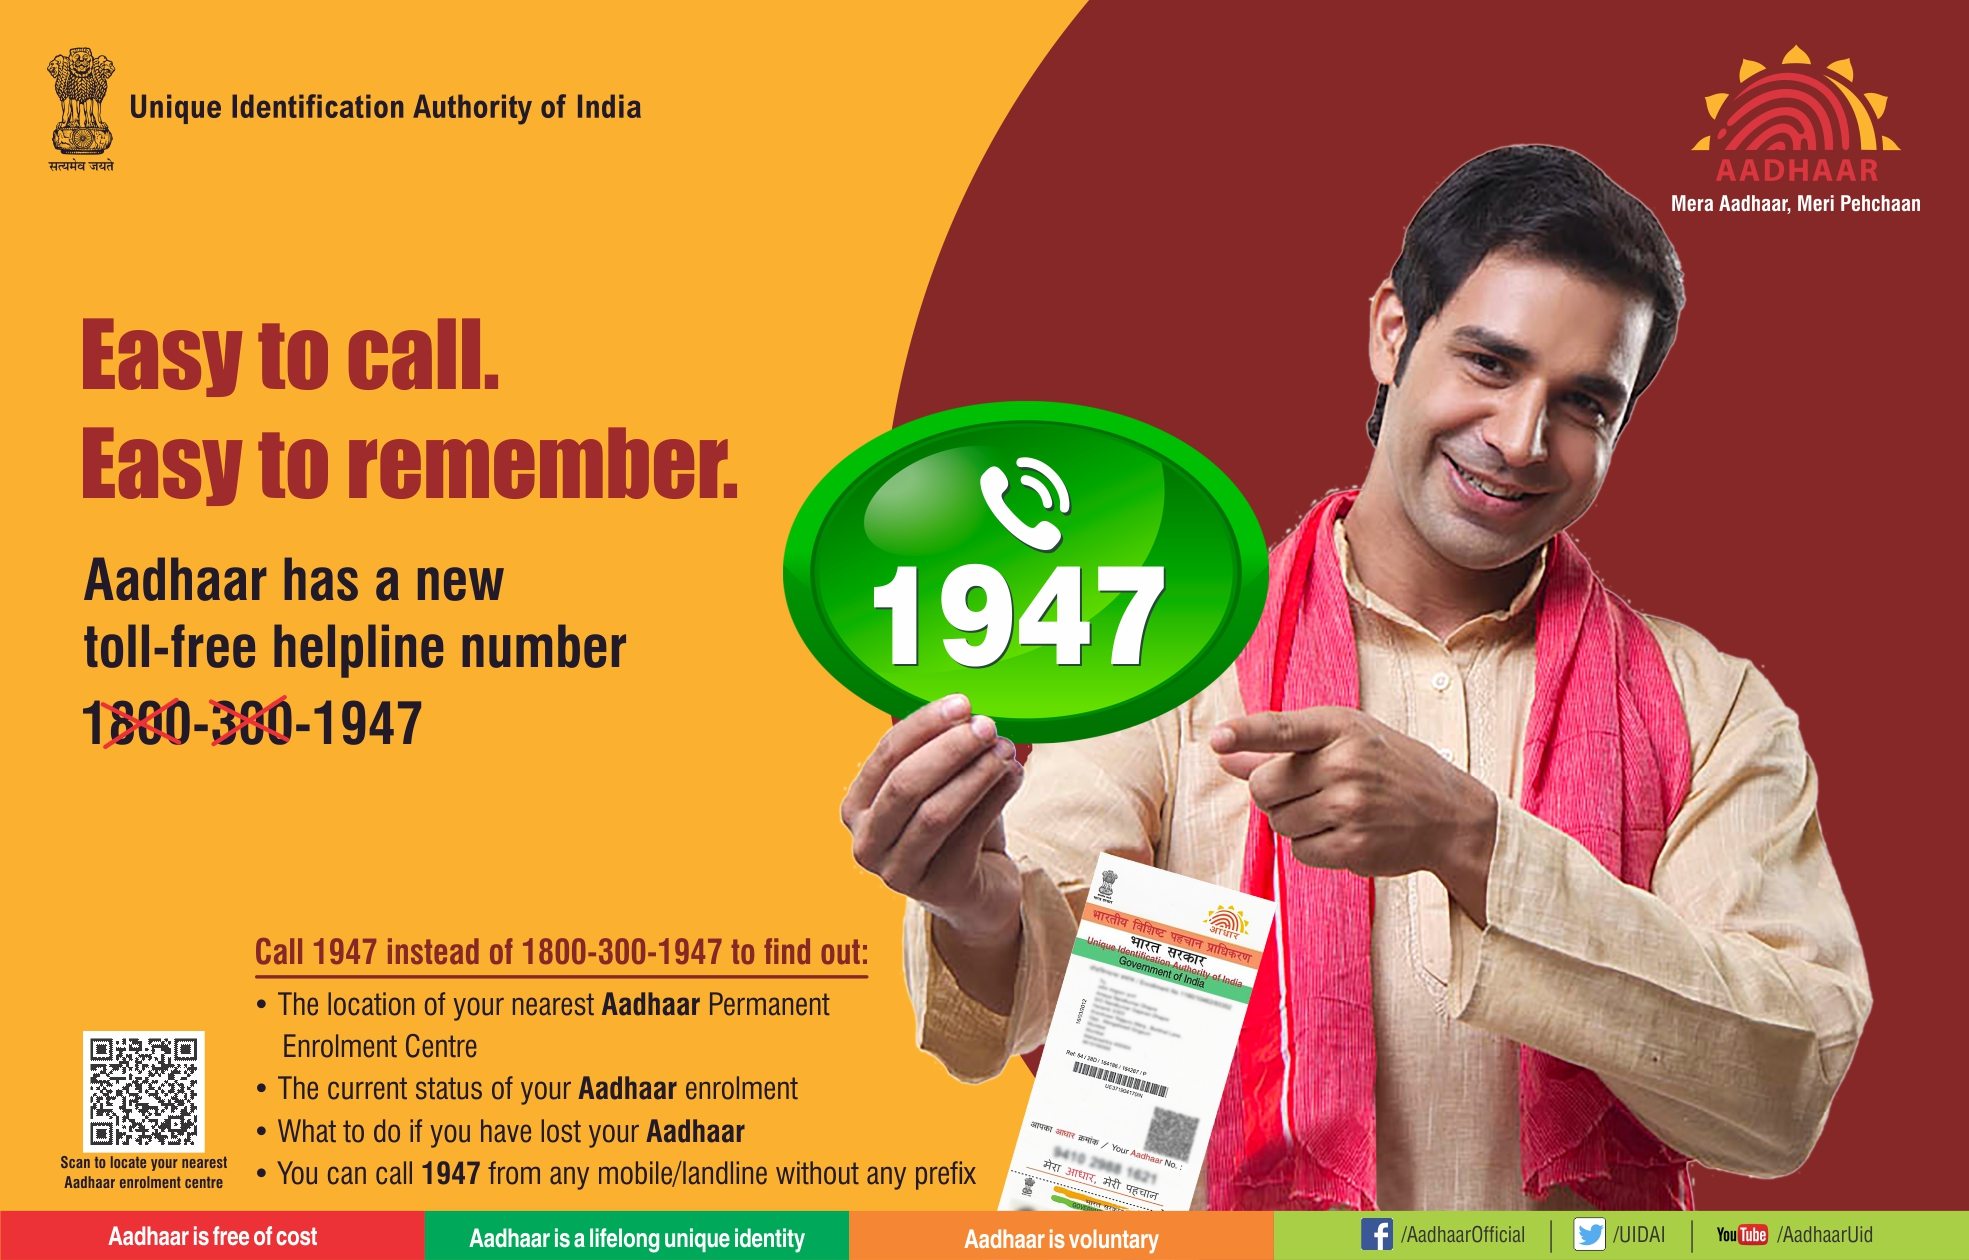 1947 is Aadhaar's new toll-free helpline number.Easy to call.Easy to remember.